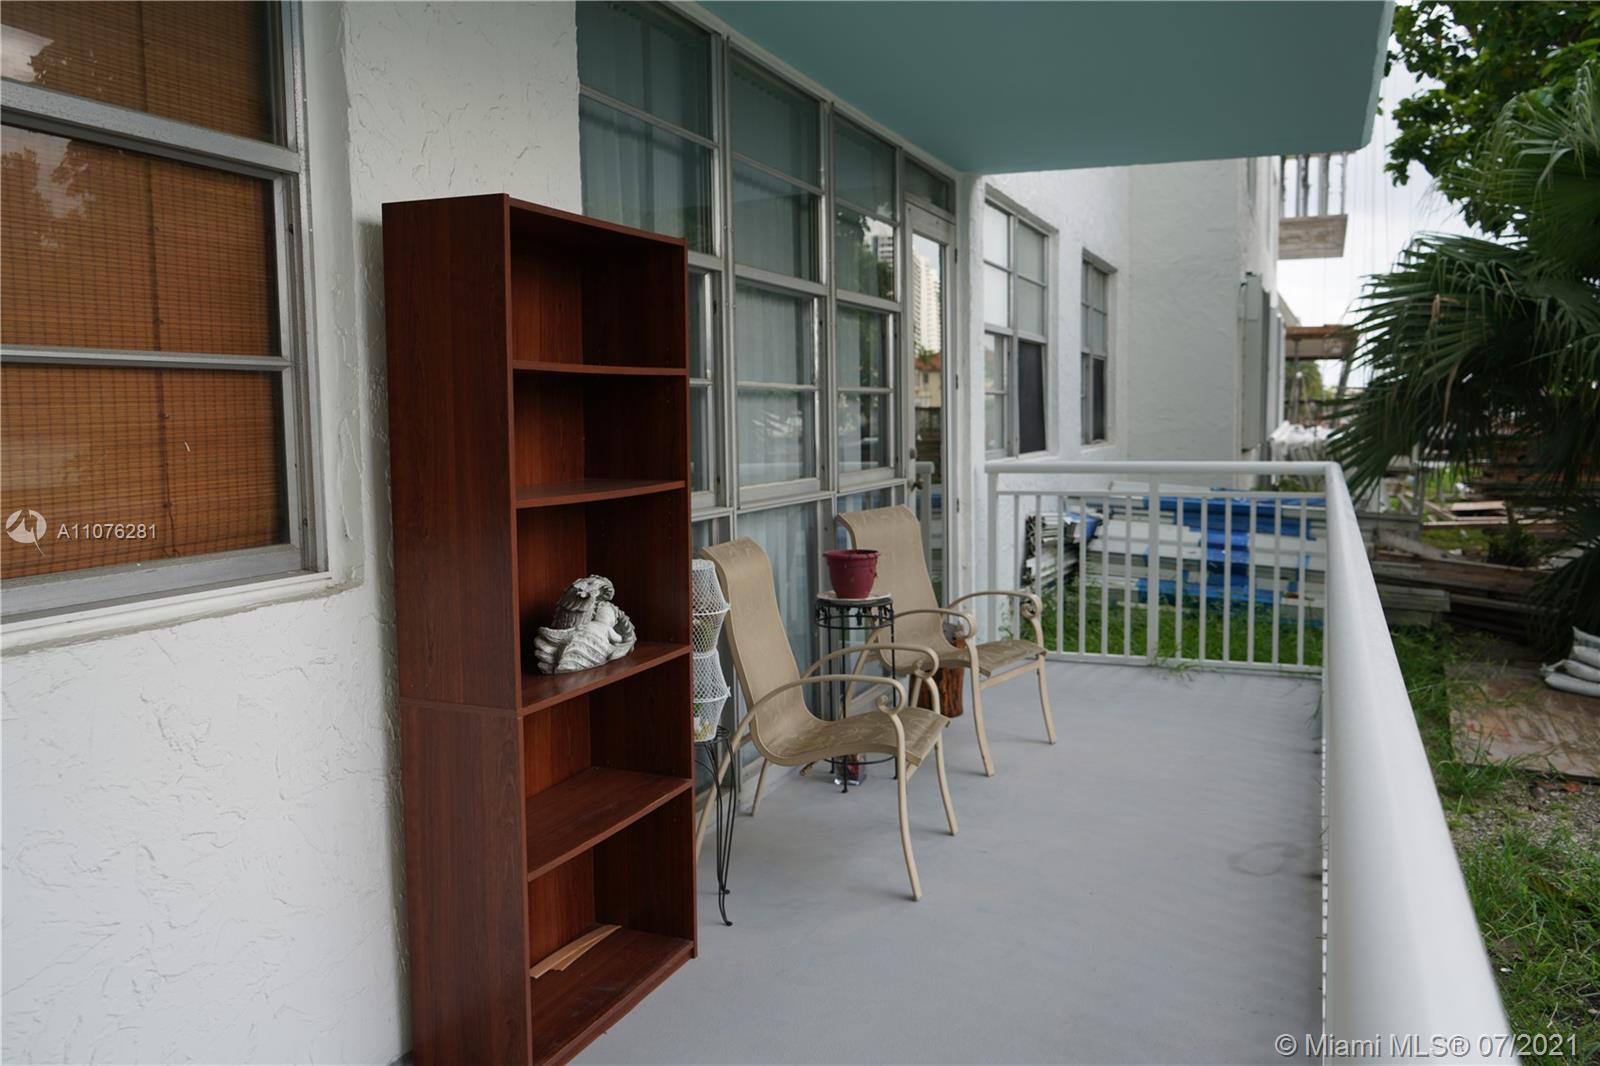 The lowest price for a quiet, oversized, and easy to access first floor 2 bed / 2 bath condo. Master